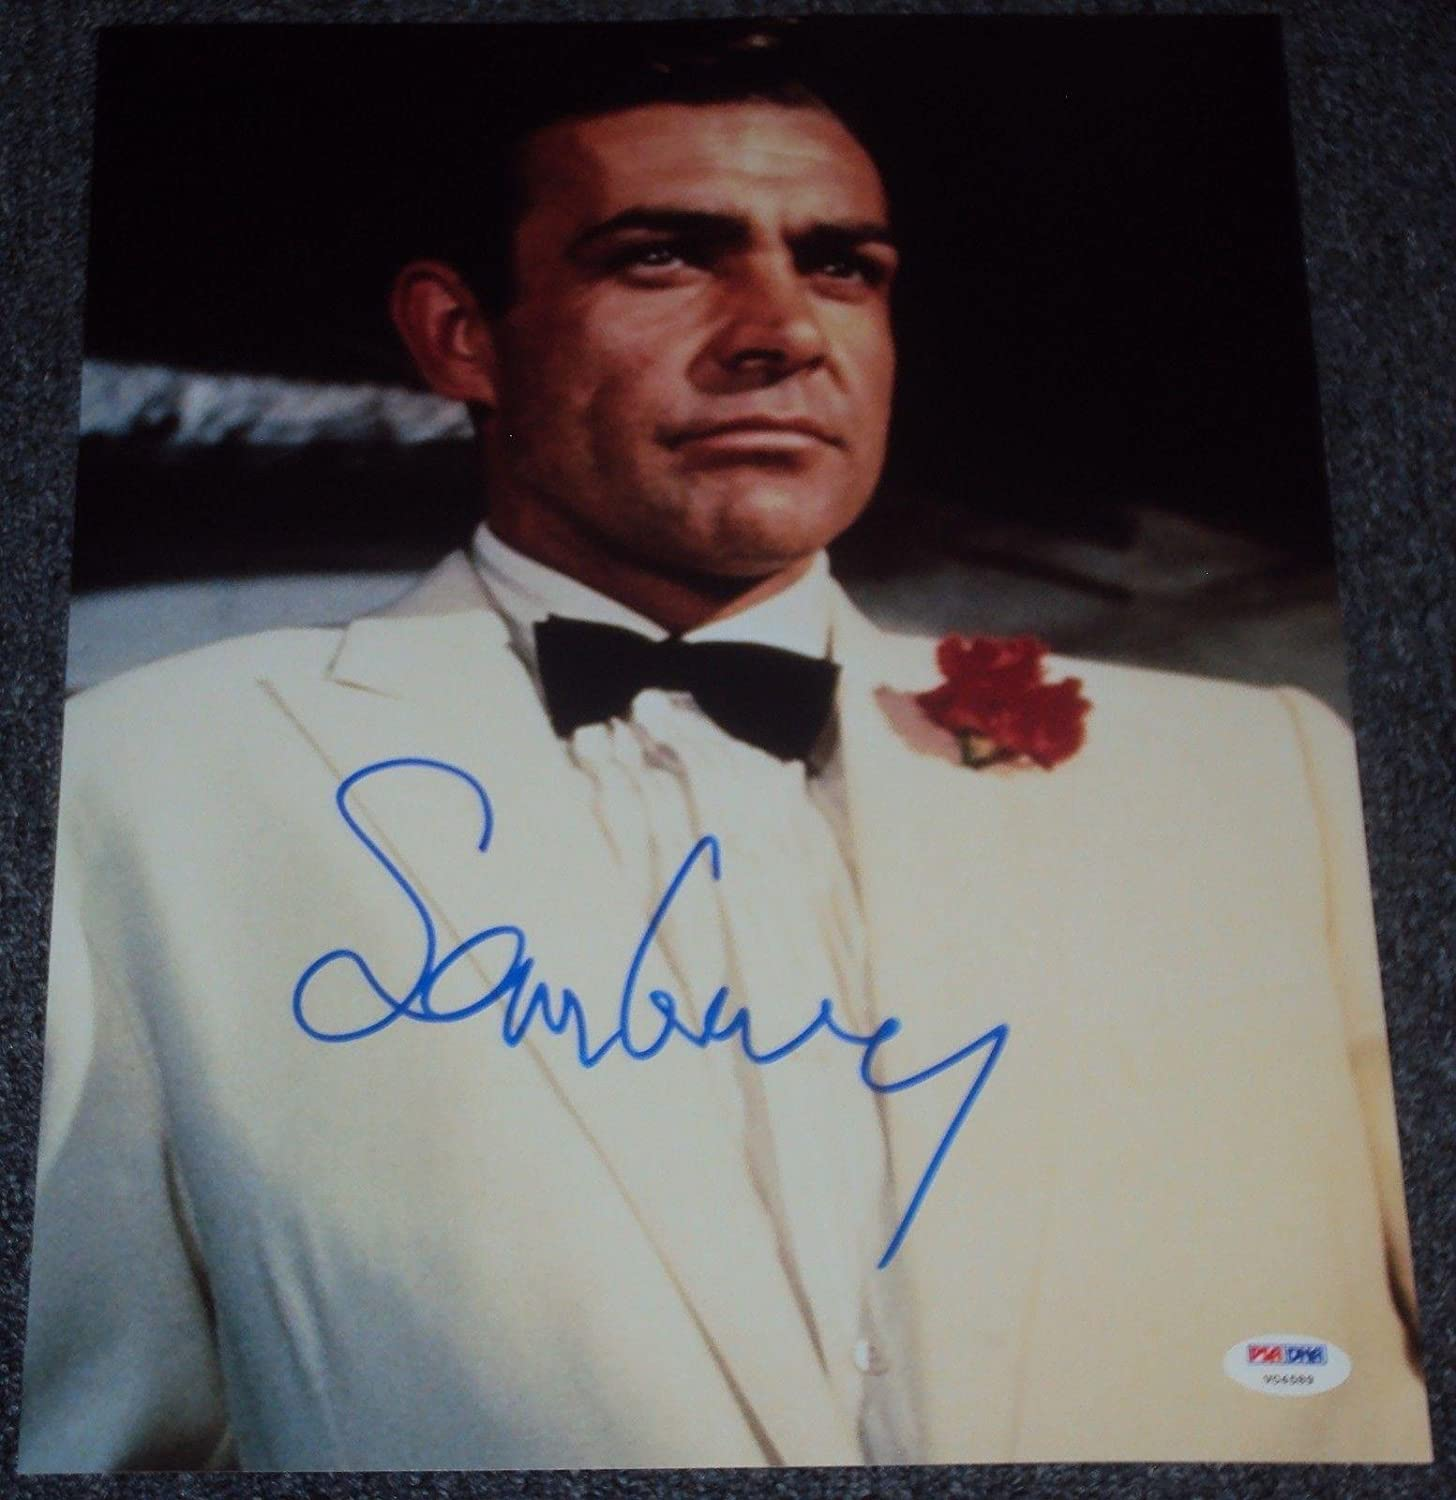 Sean Connery Signed Autograph James Bond Classic Suit 11x14 Photo V04589 Psa Dna Certified Movie Photos At Amazon S Entertainment Collectibles Store